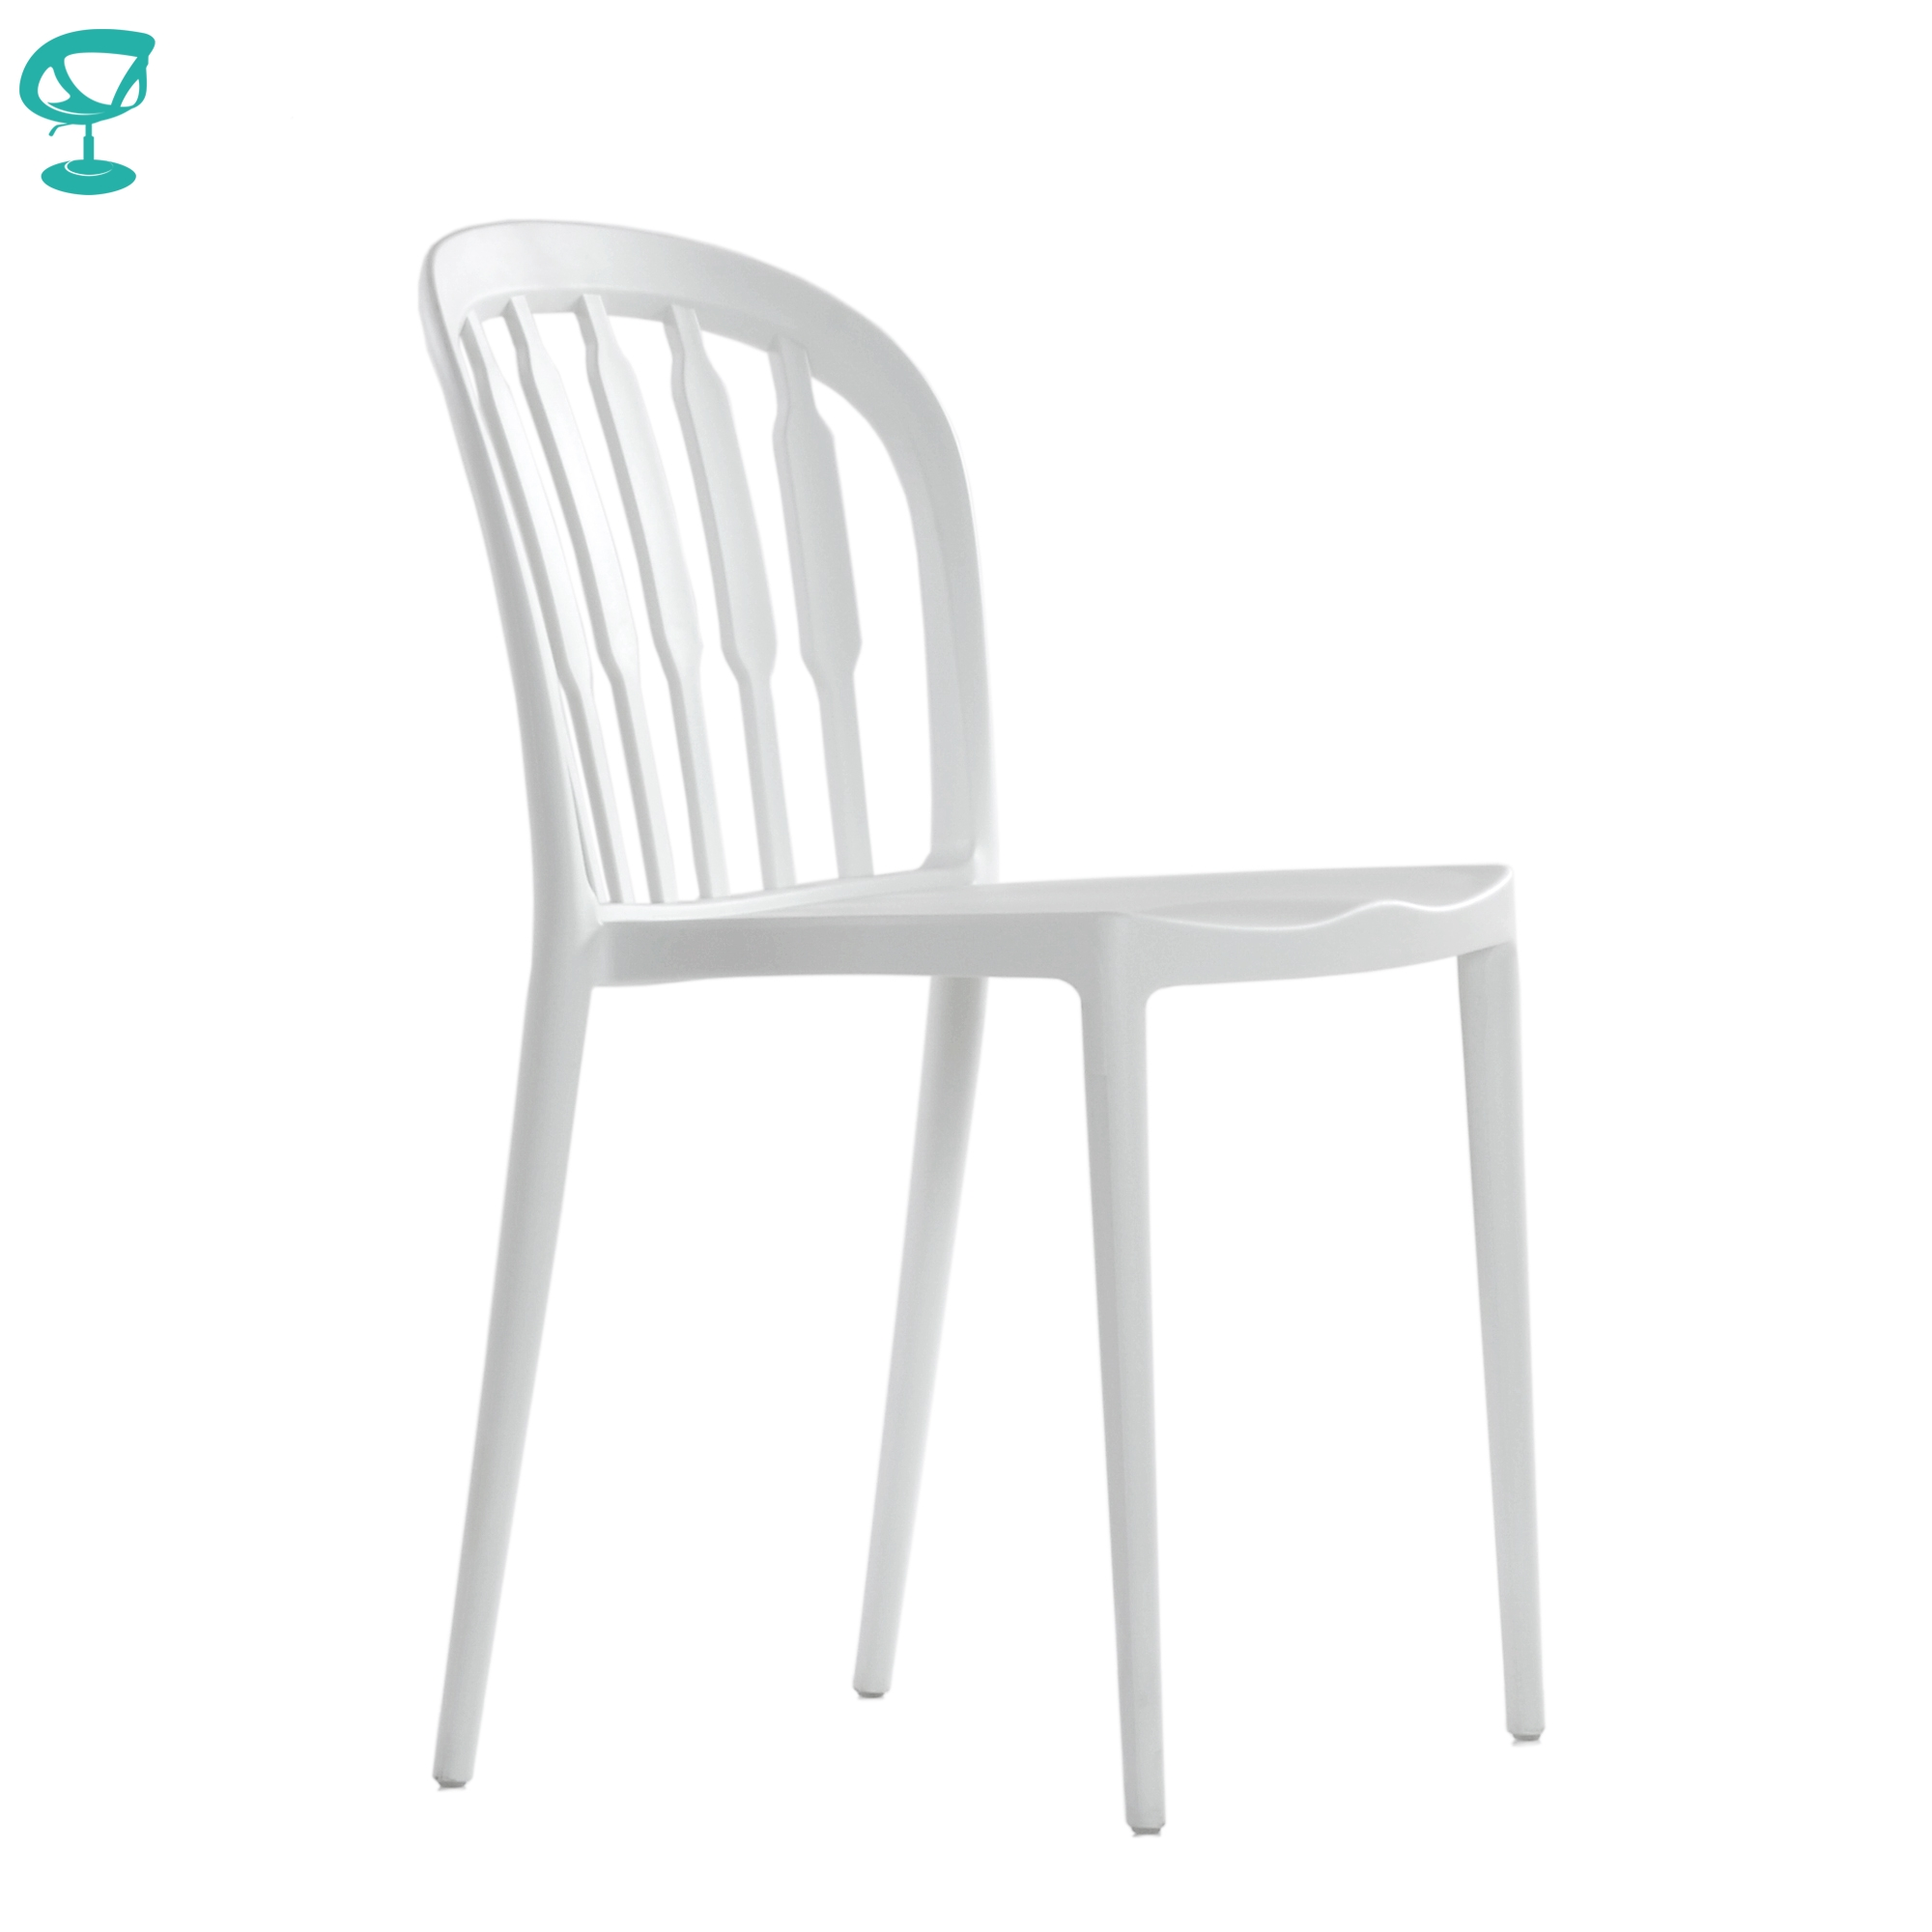 95719 Barneo N-216 Plastic Kitchen Interior Stool Chair For A Street Cafe Chair Kitchen Furniture White Free Shipping In Russia